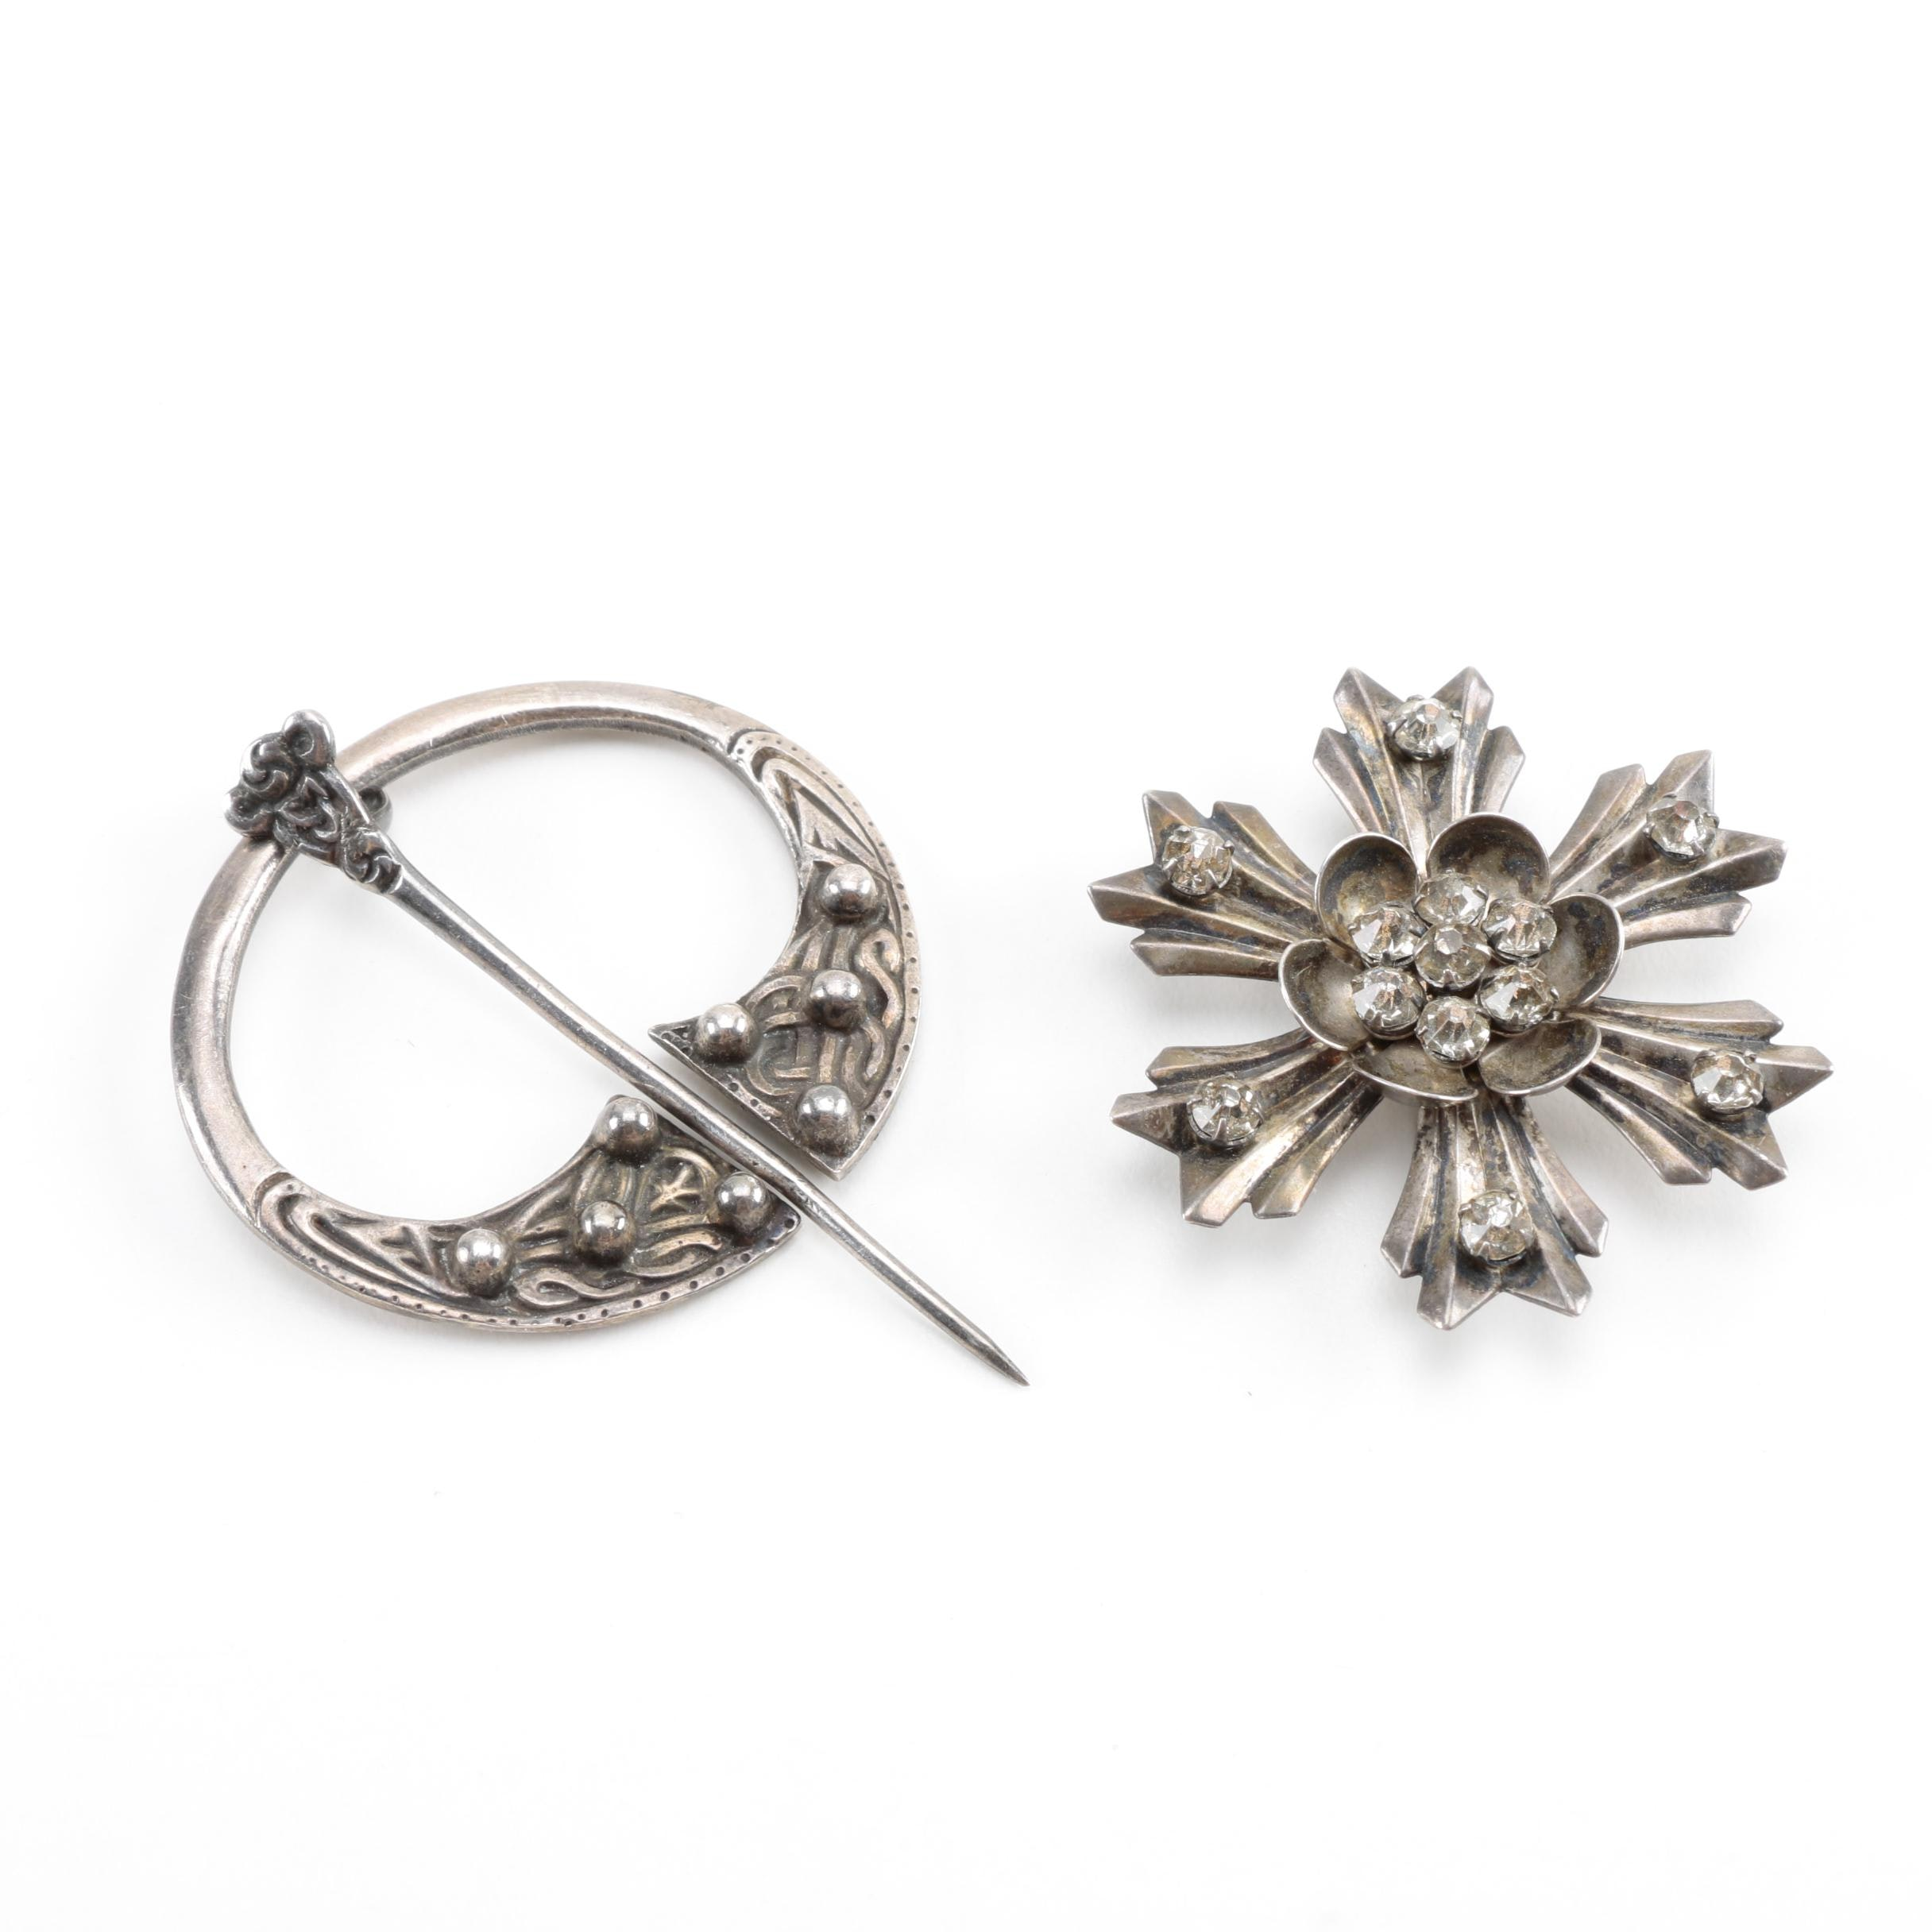 Vintage Sterling Silver Brooches